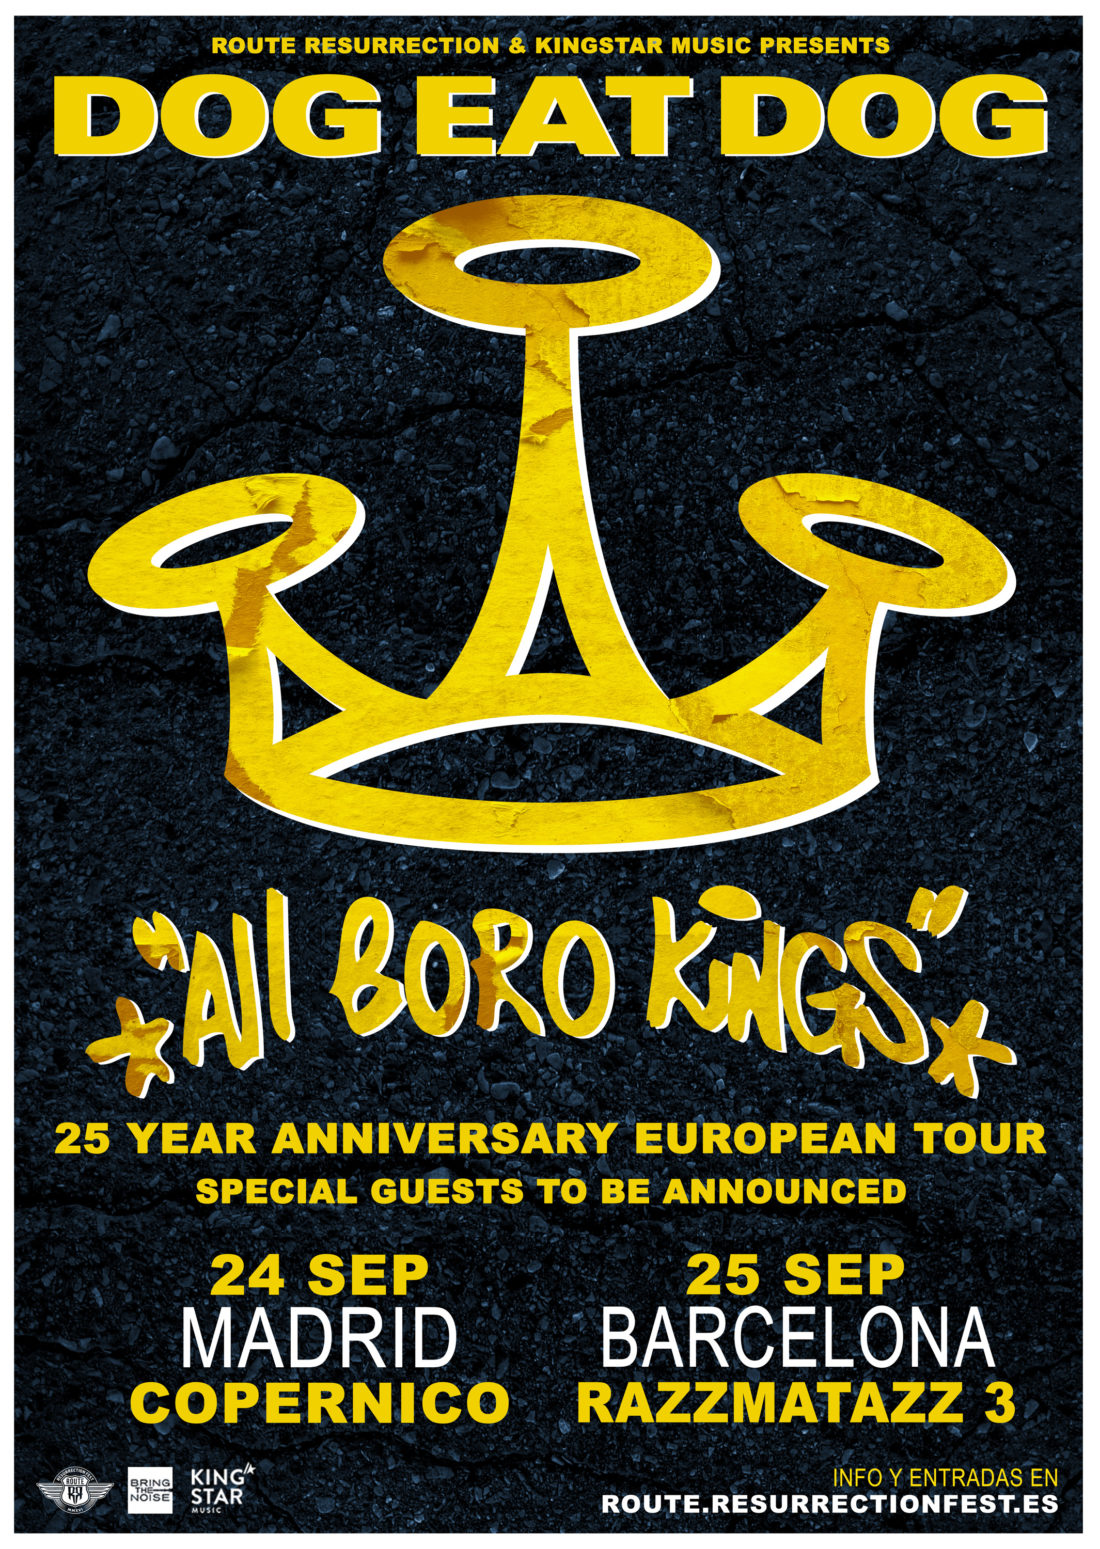 "Nueva gira Route Resurrection: Dog Eat Dog – 25th Anniversary ""All Boro Kings"""